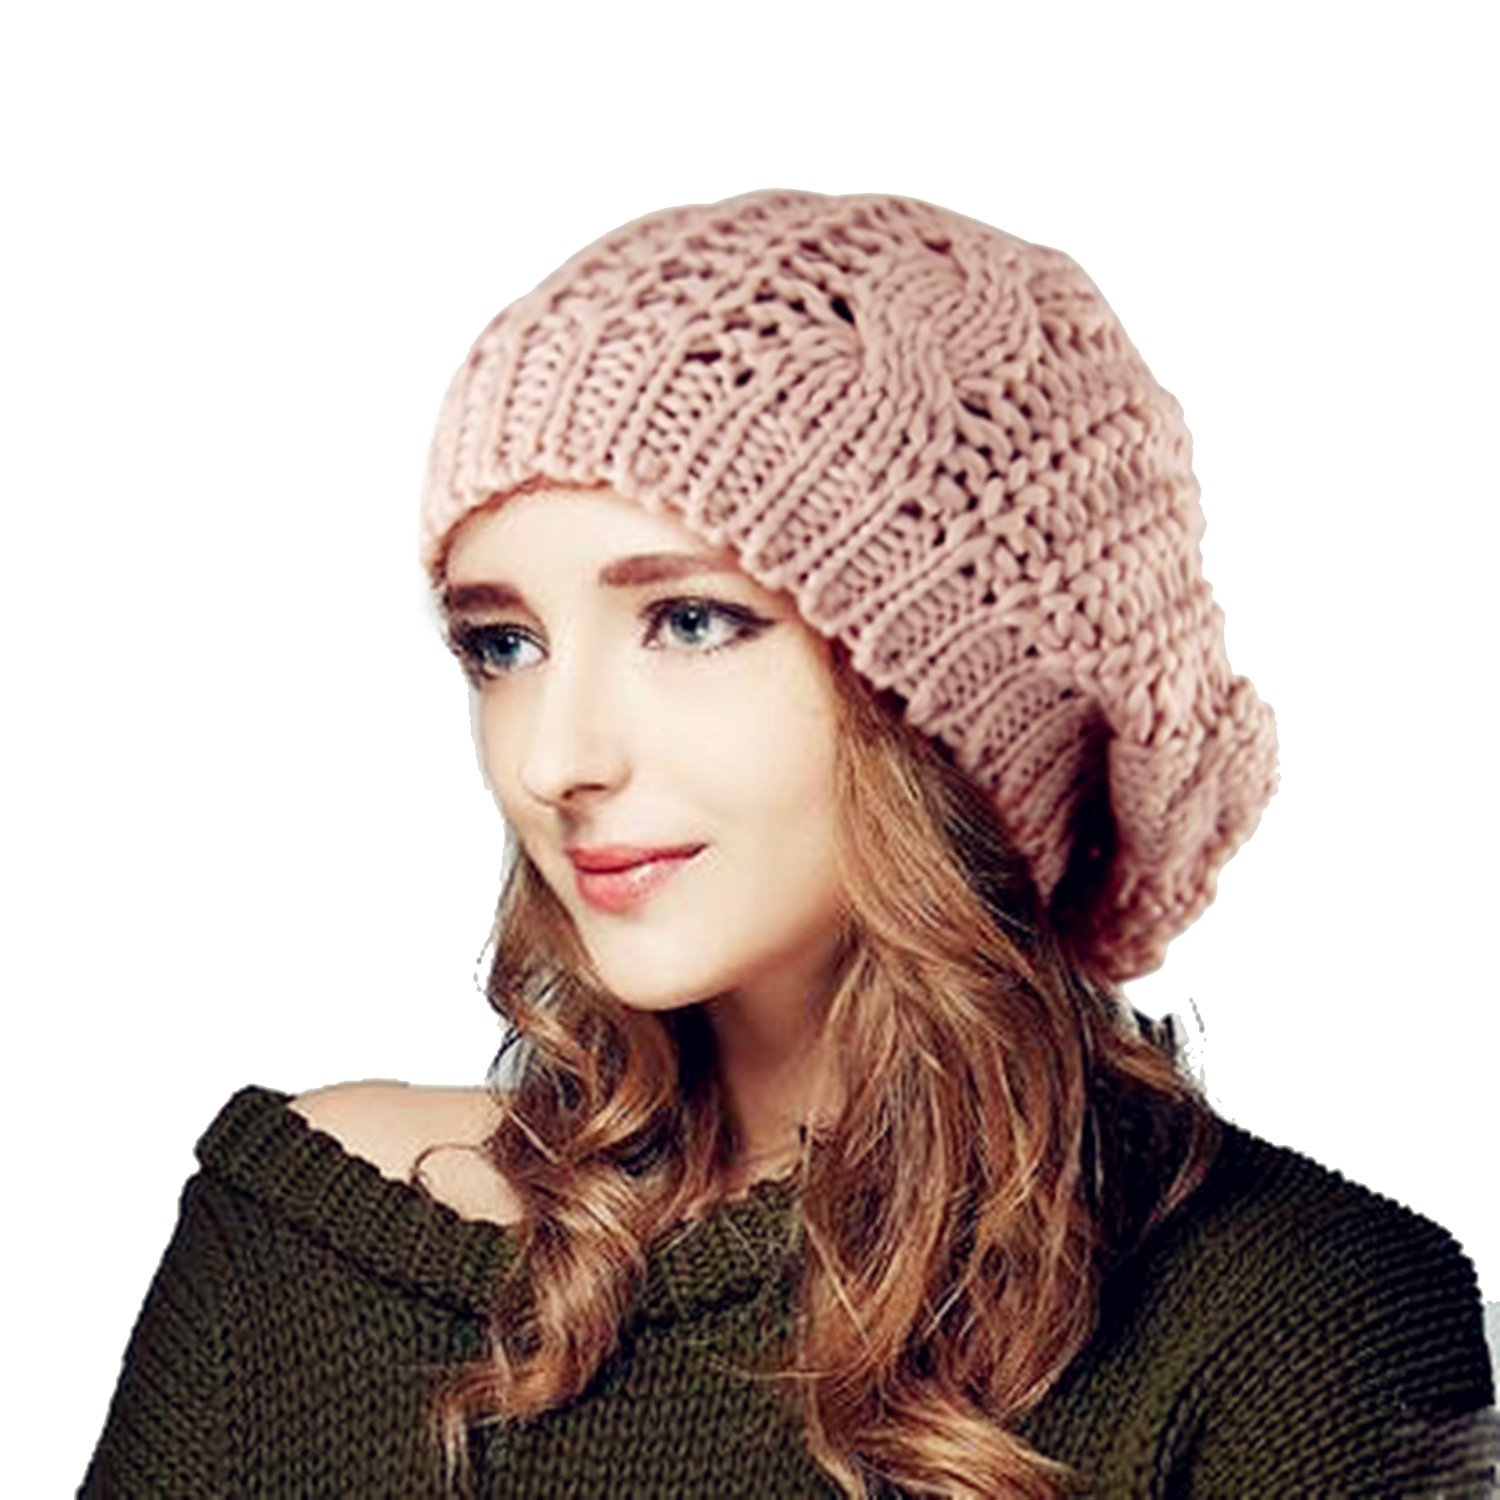 Beyondfashion Winter Lady's Warm Knitted Knit Beret Braided Ski Cap Baggy Beanie Crochet women Hat